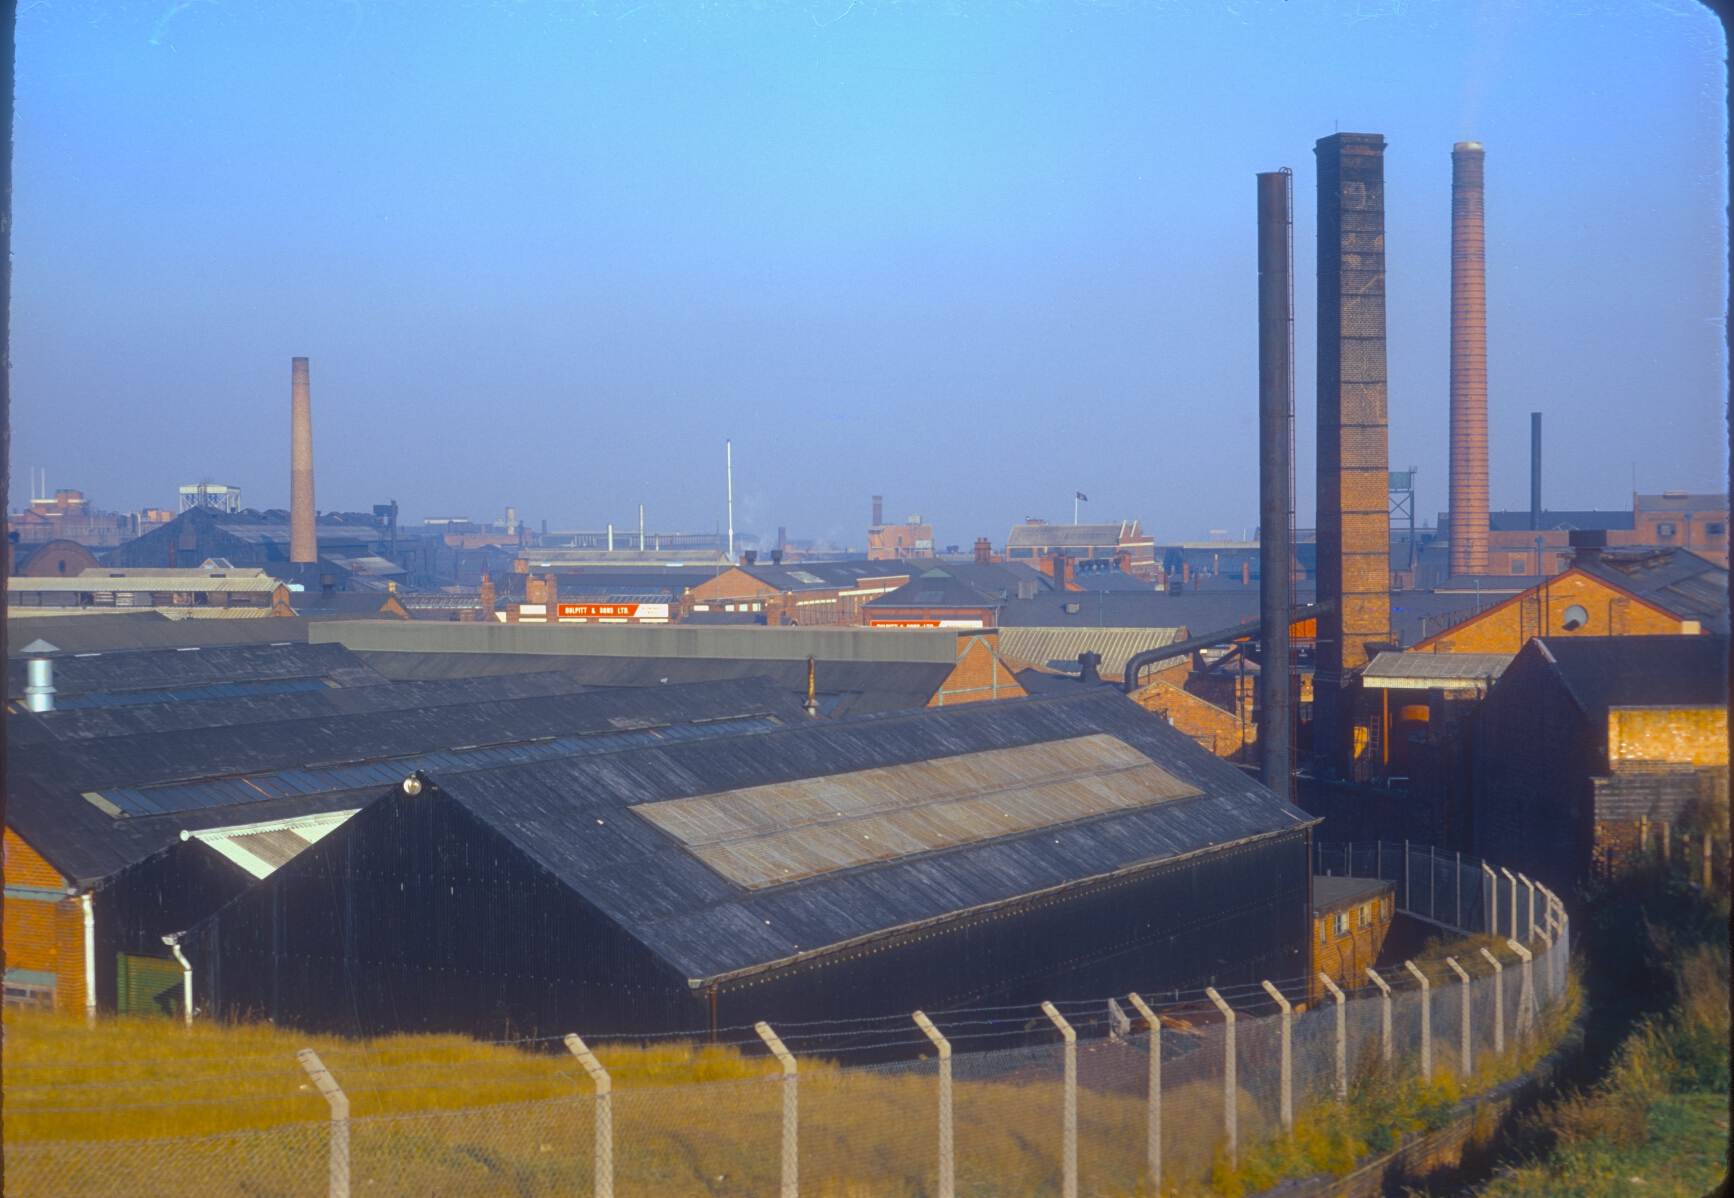 Ladywood Industrial area around Icknfield Port Rd from Rotton Park Reservoir Dam. 9th November 1968